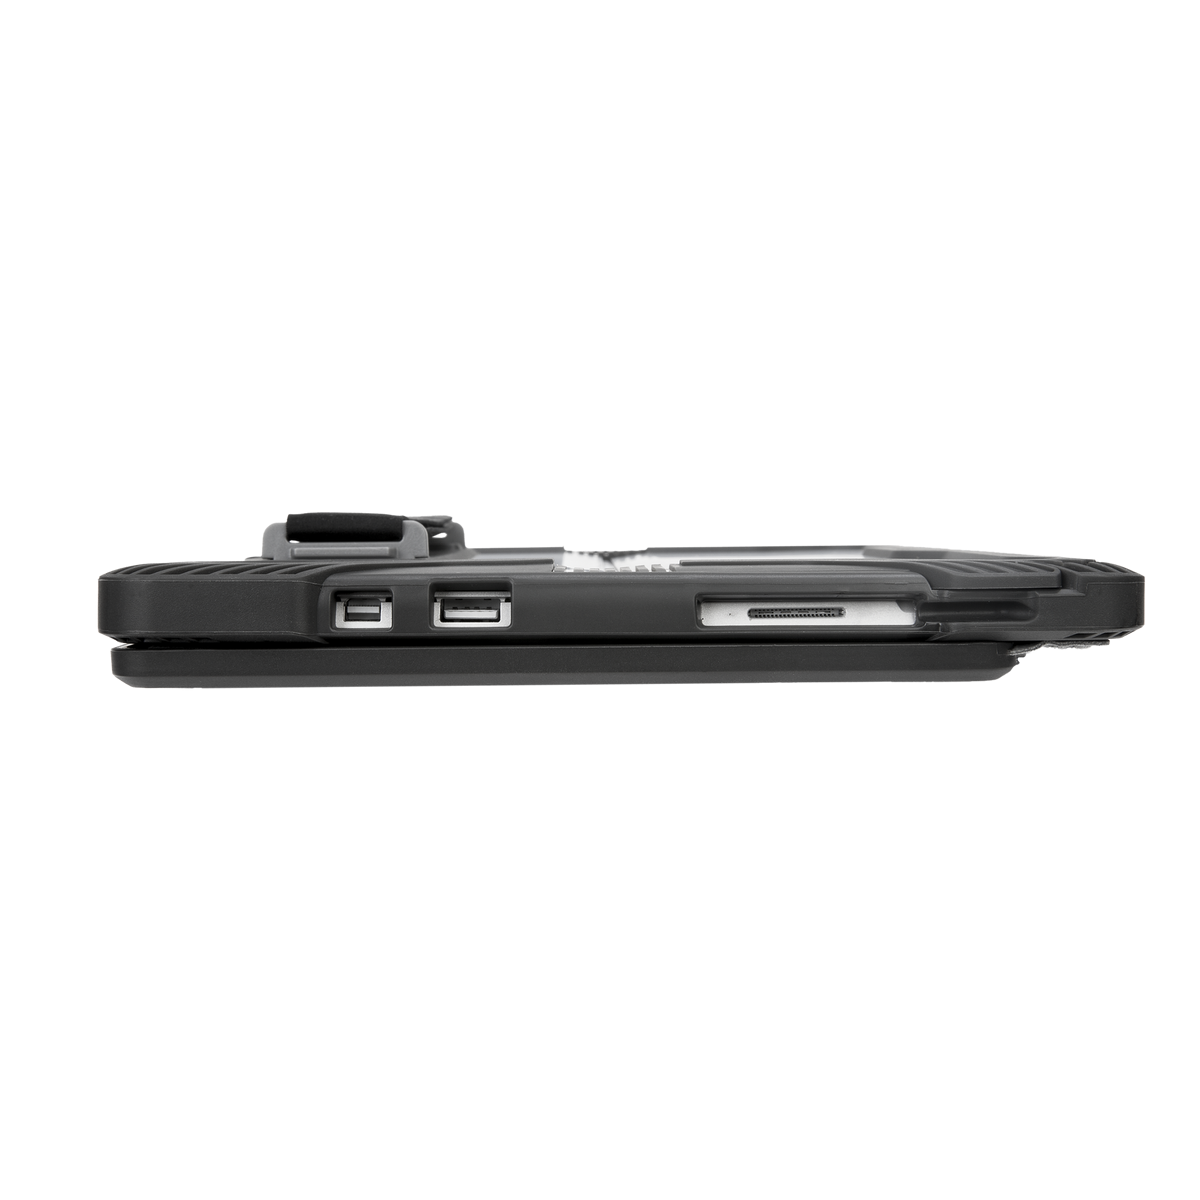 Picture of Safeport® Rugged Case for Surface Pro (2017) , Surface Pro 4 and Surface Pro 6 - Black